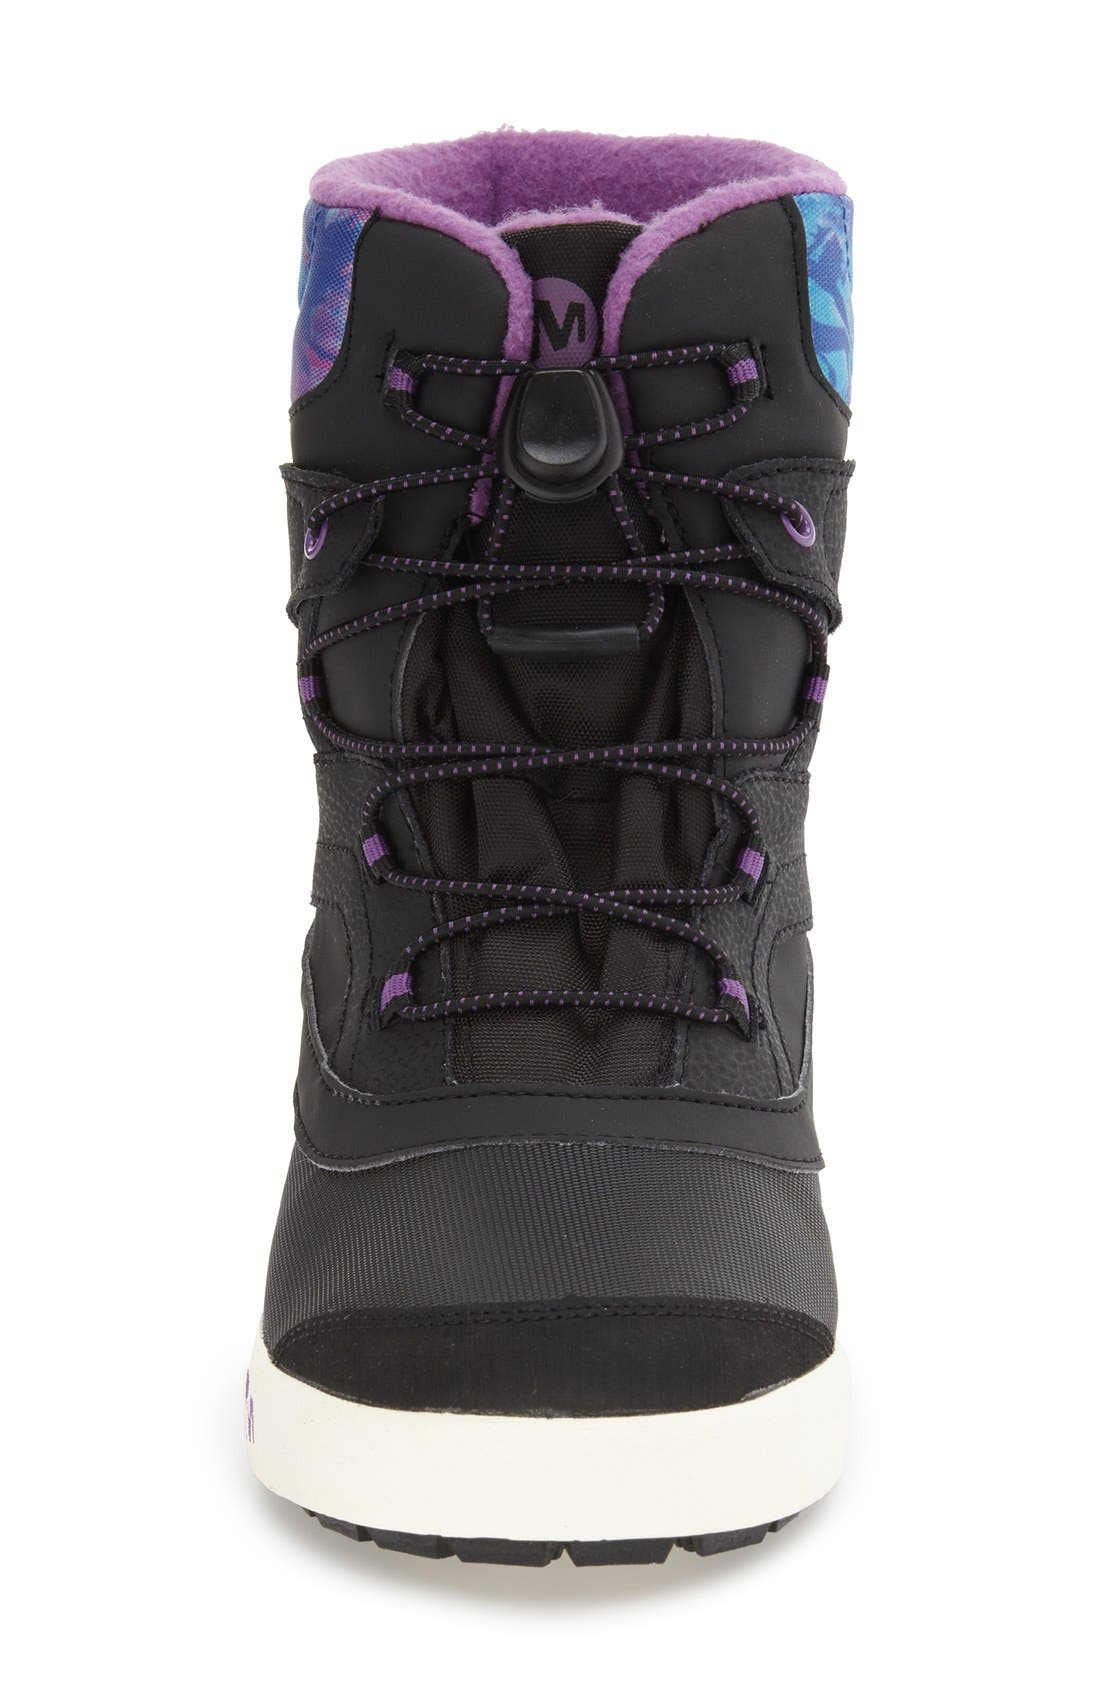 'Snow Bank 2' Waterproof Boot,                             Alternate thumbnail 3, color,                             BLACK/ PRINT/ BERRY LEATHER